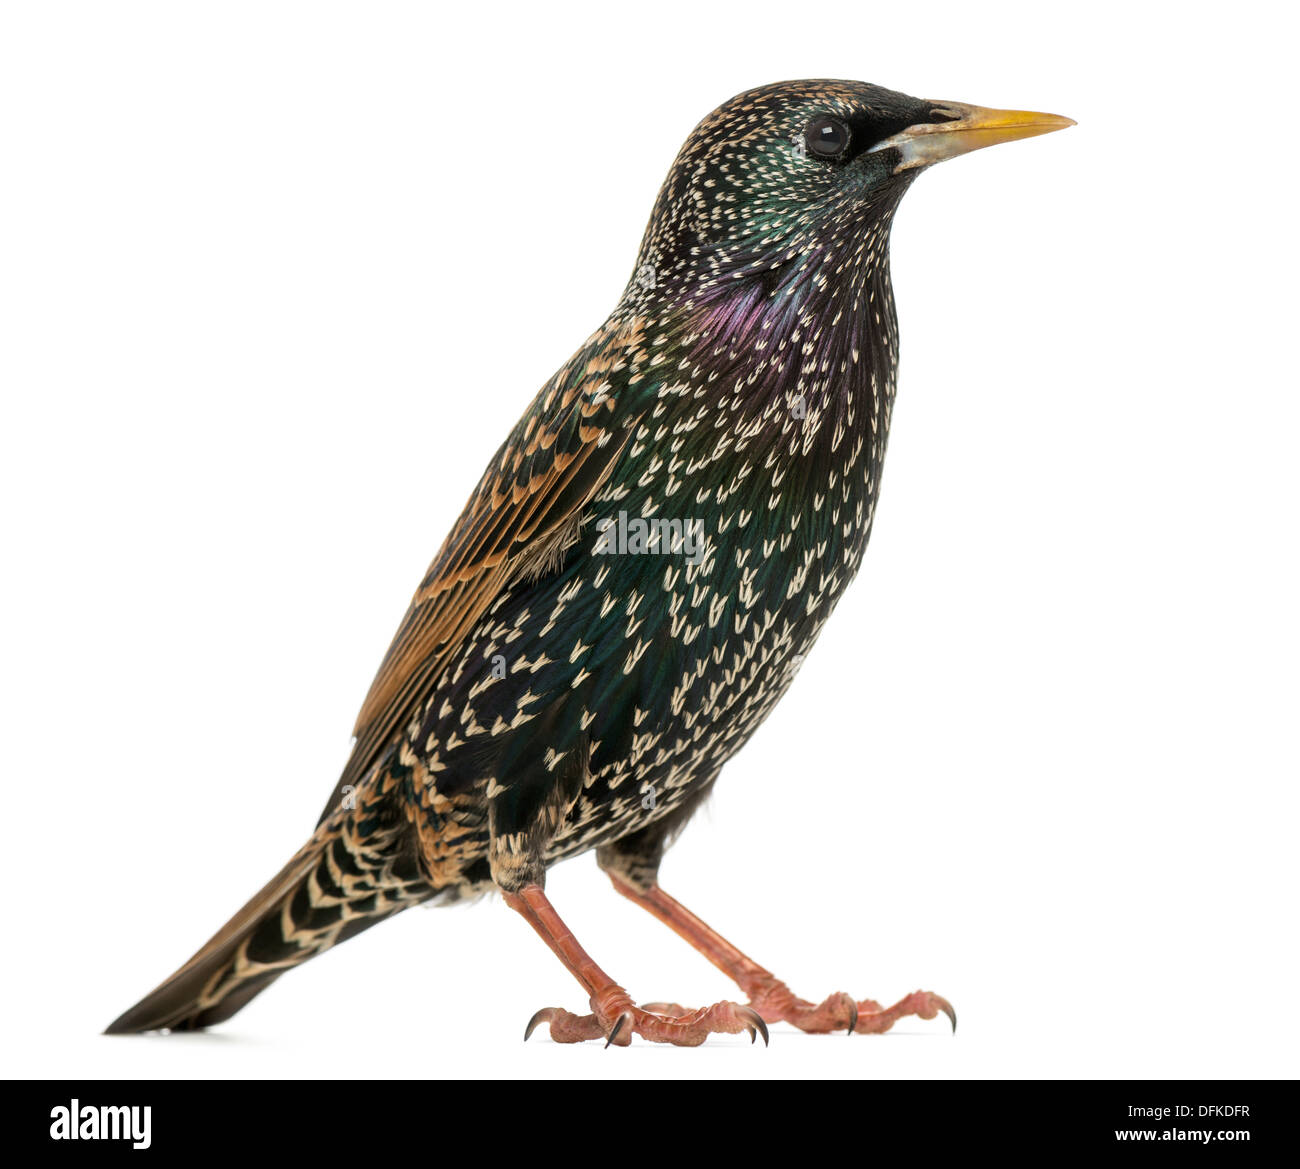 Side view of a Common Starling, Sturnus vulgaris, against white background Stock Photo